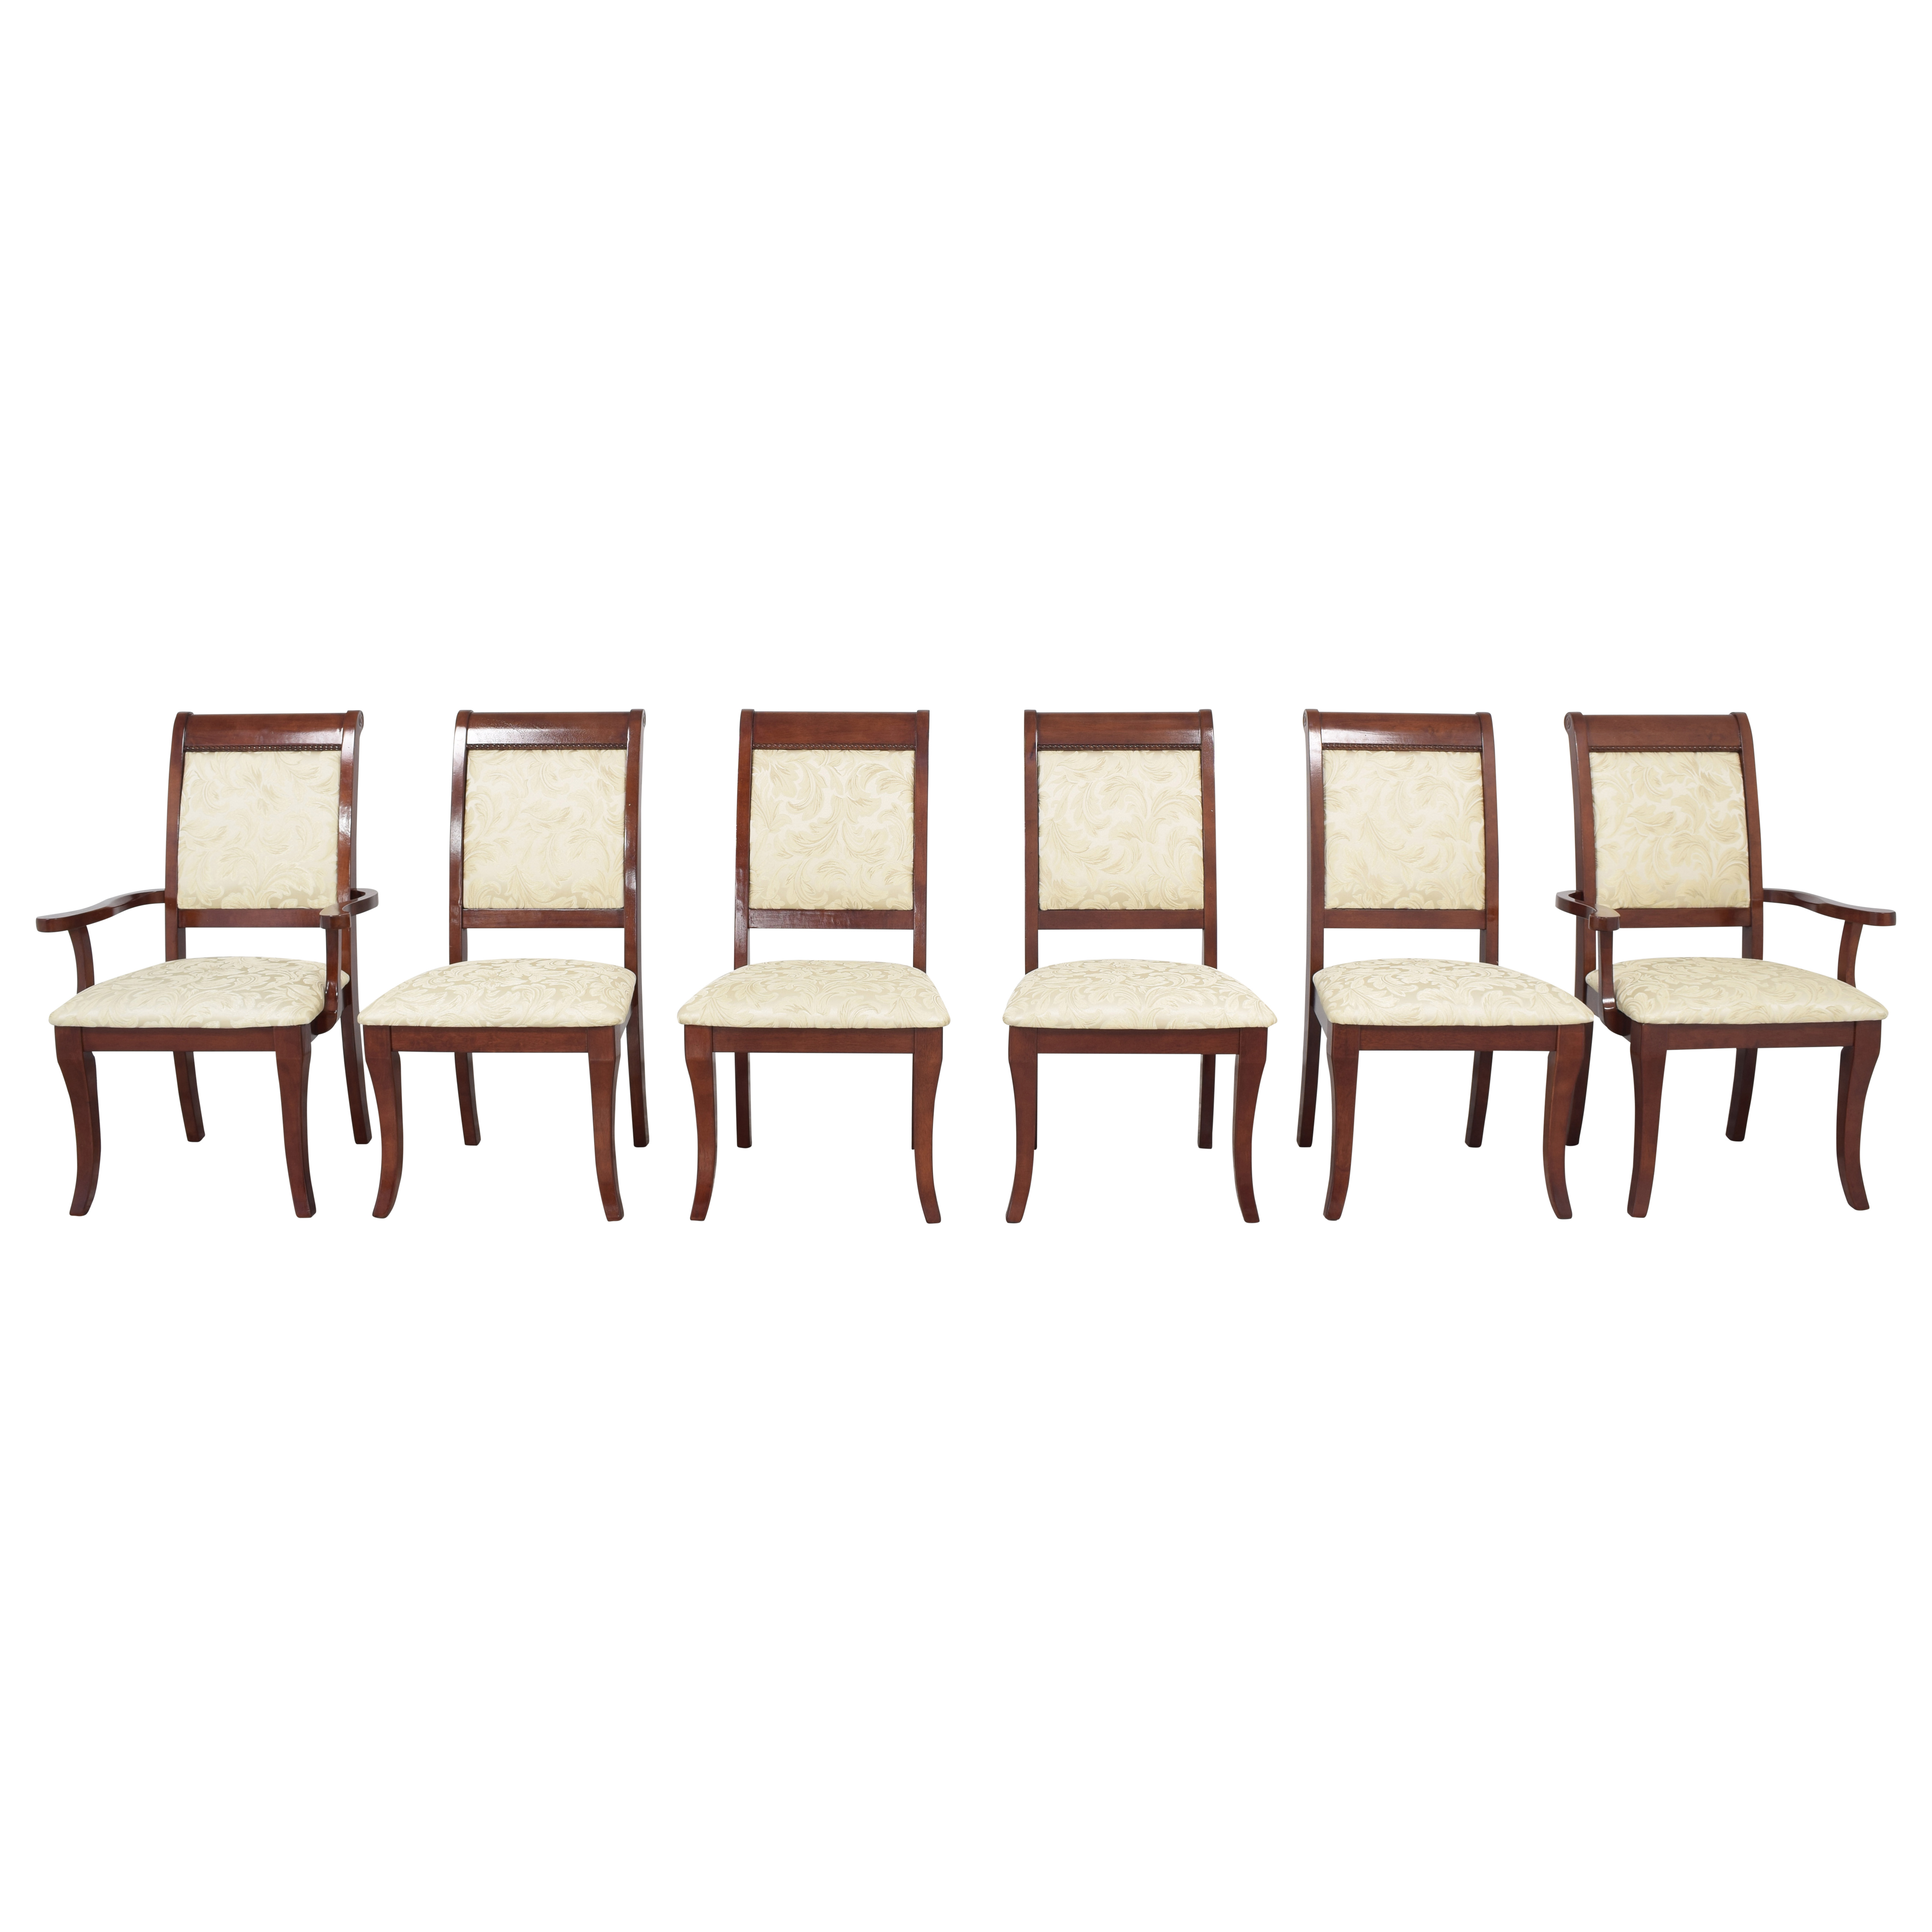 Upholstered Dining Chairs price